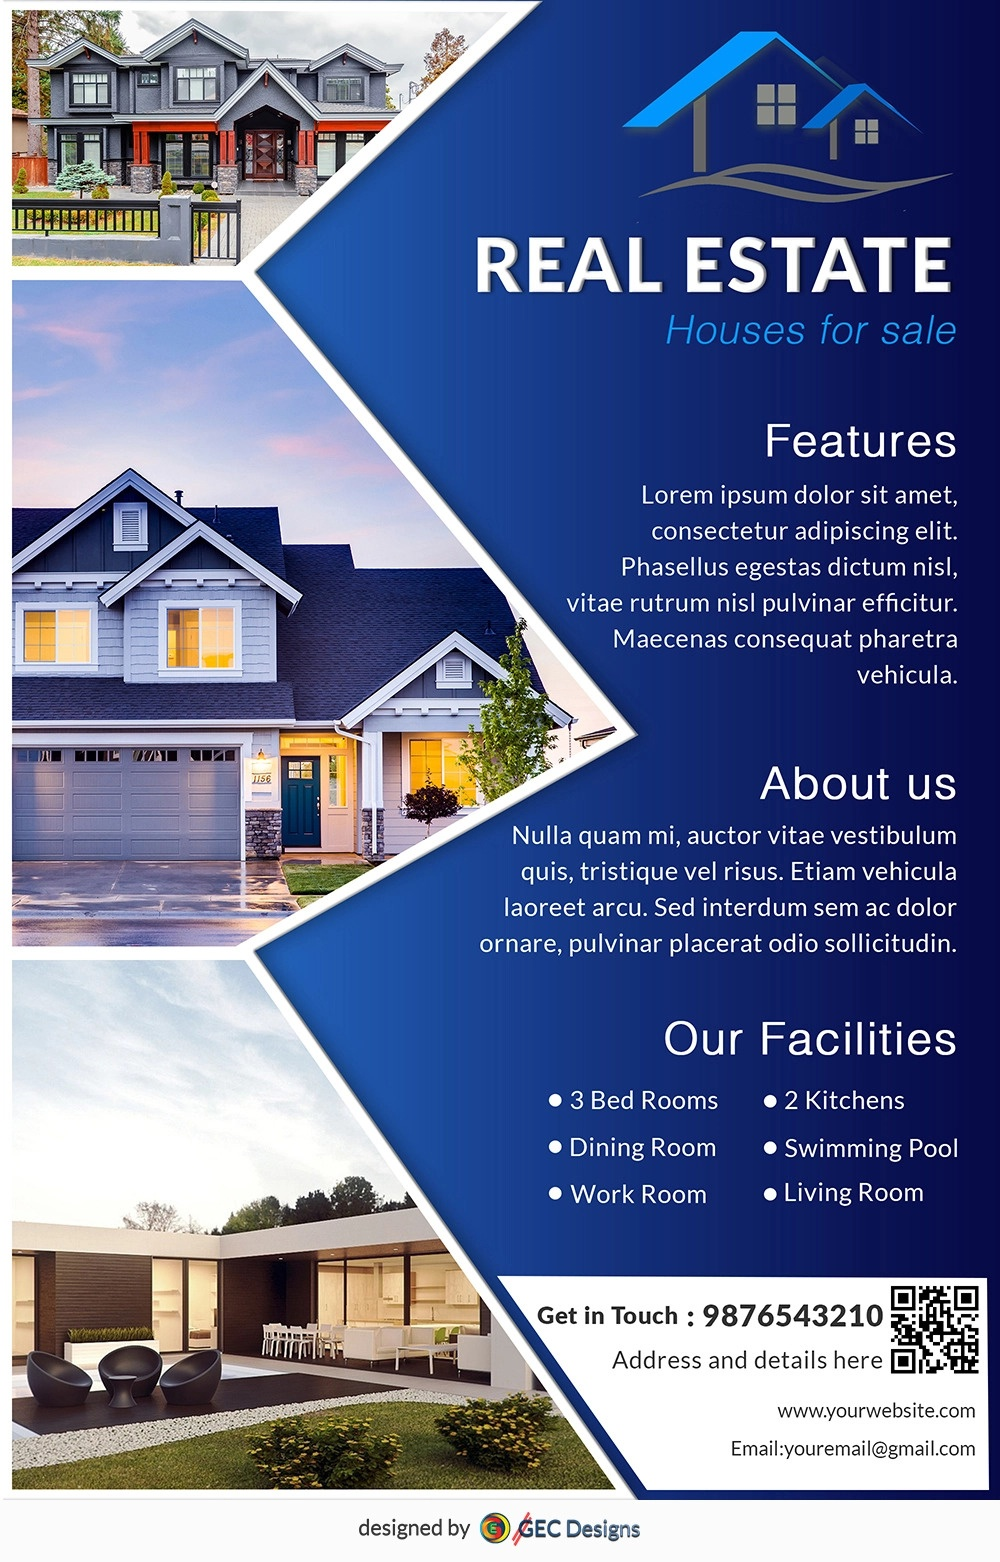 Download Free House For Sale Real Estate Flyer Design Templates - Free Printable Real Estate Flyer Templates